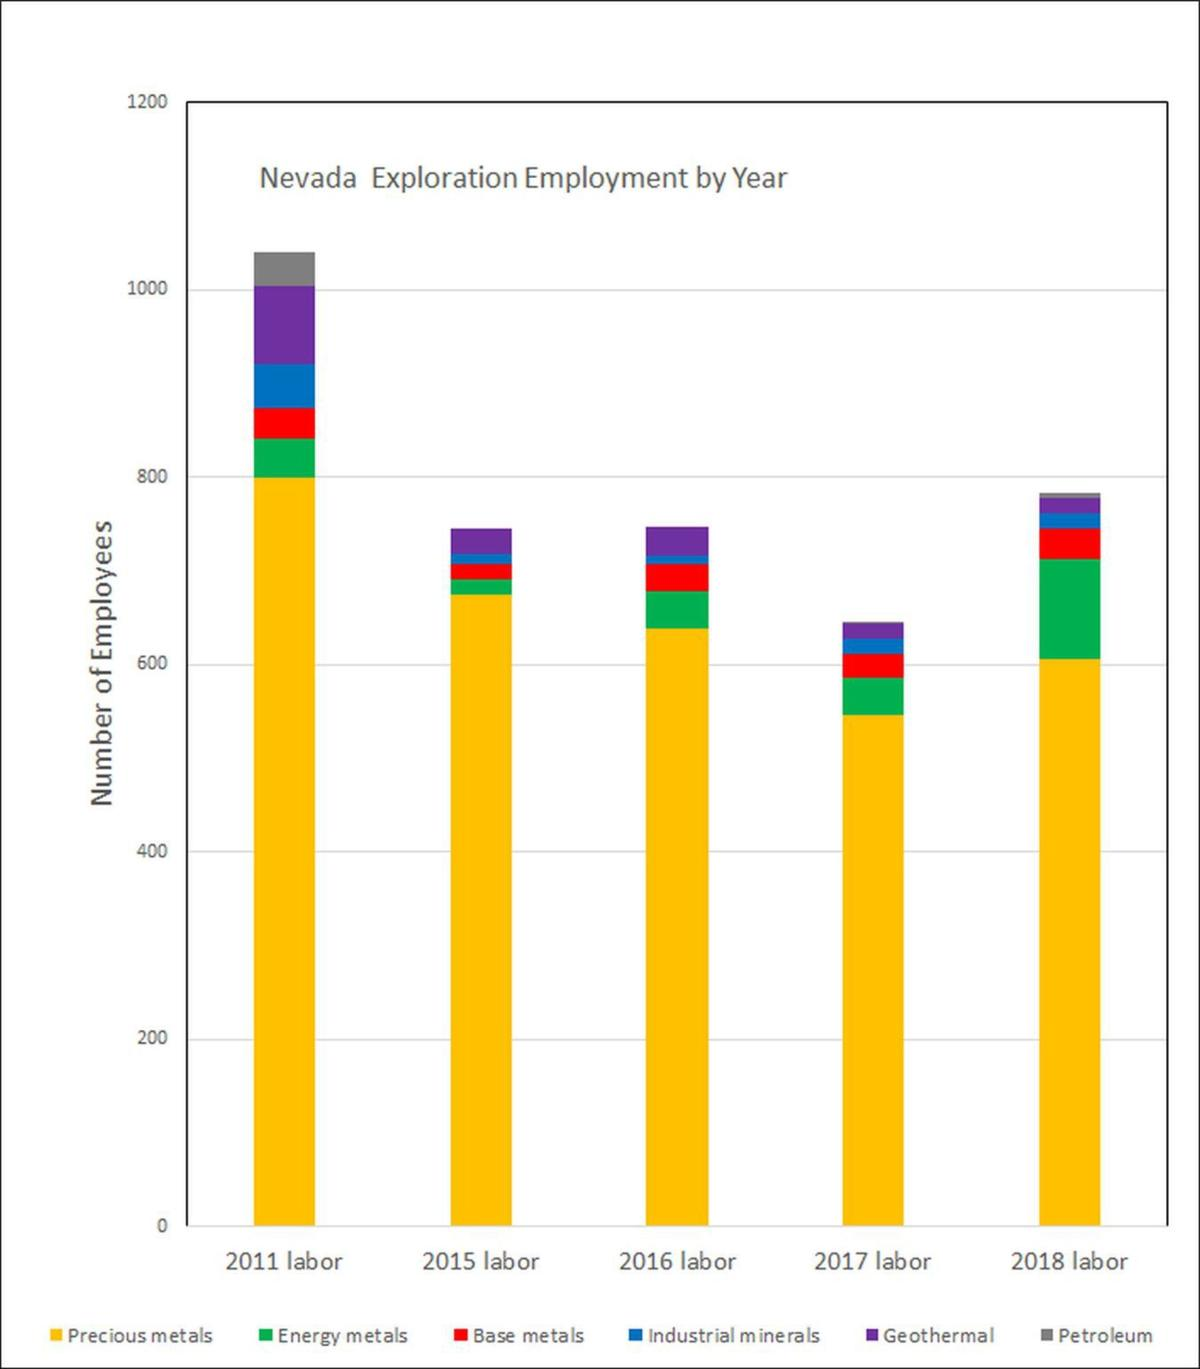 Nevada Exploration Employment By Year